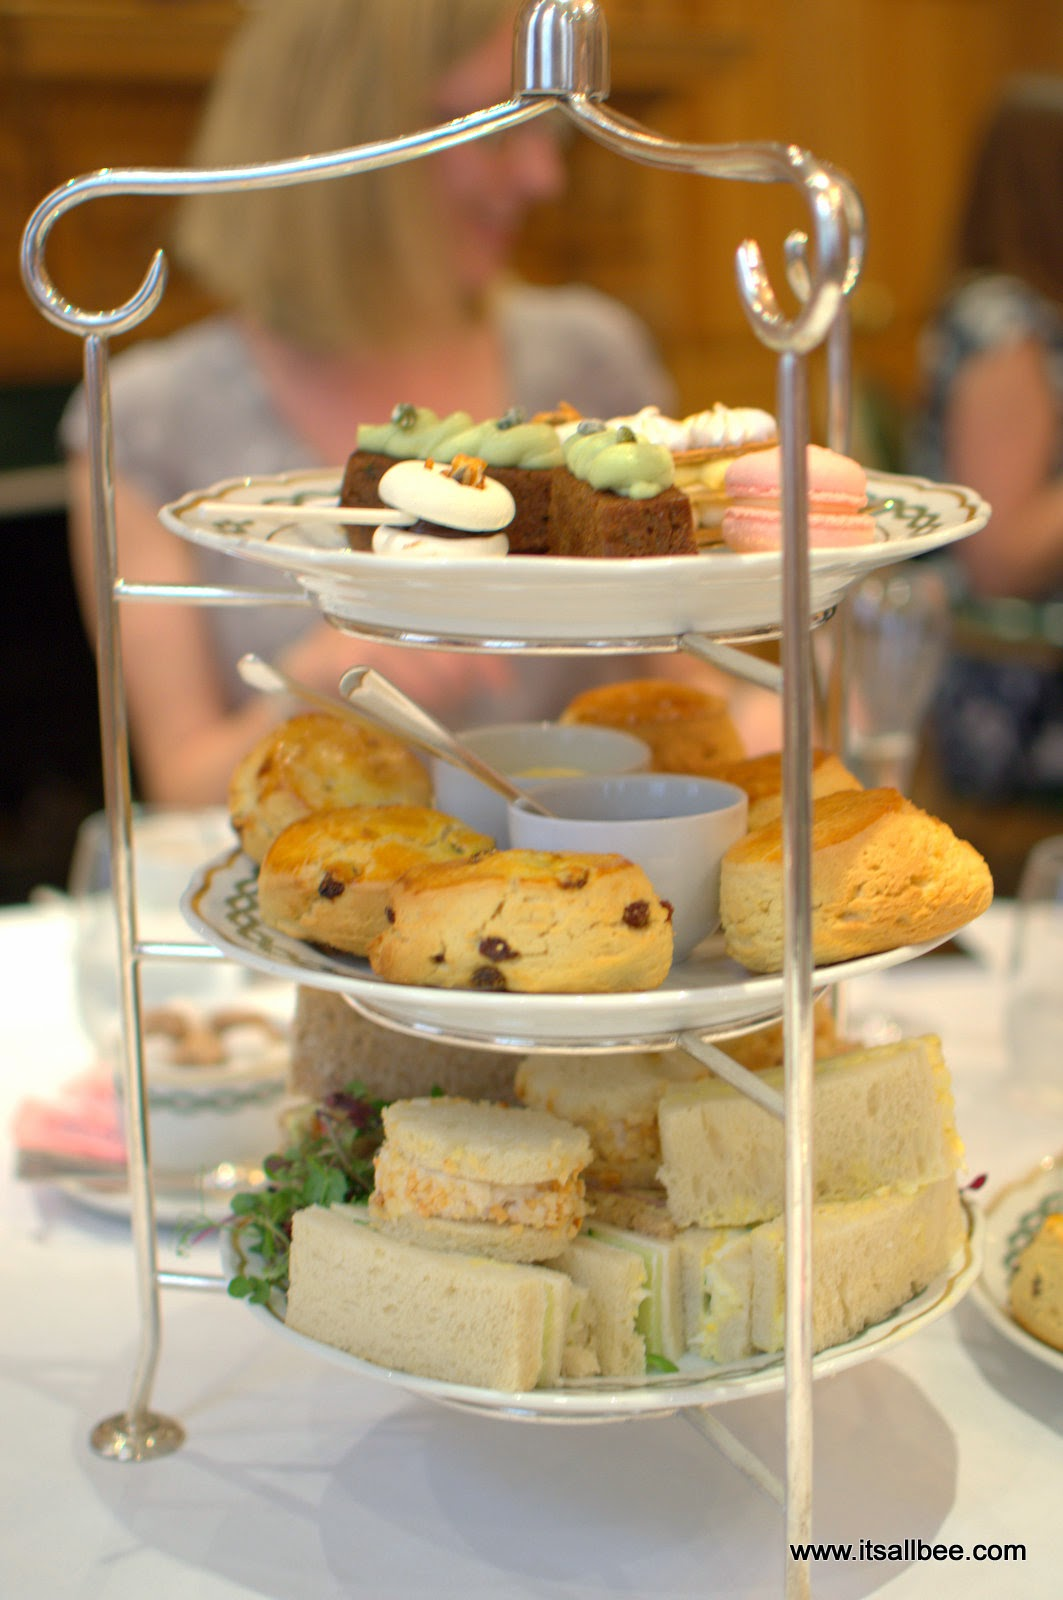 Champagne and Scones - Afternoon Tea At Milestone LONDON